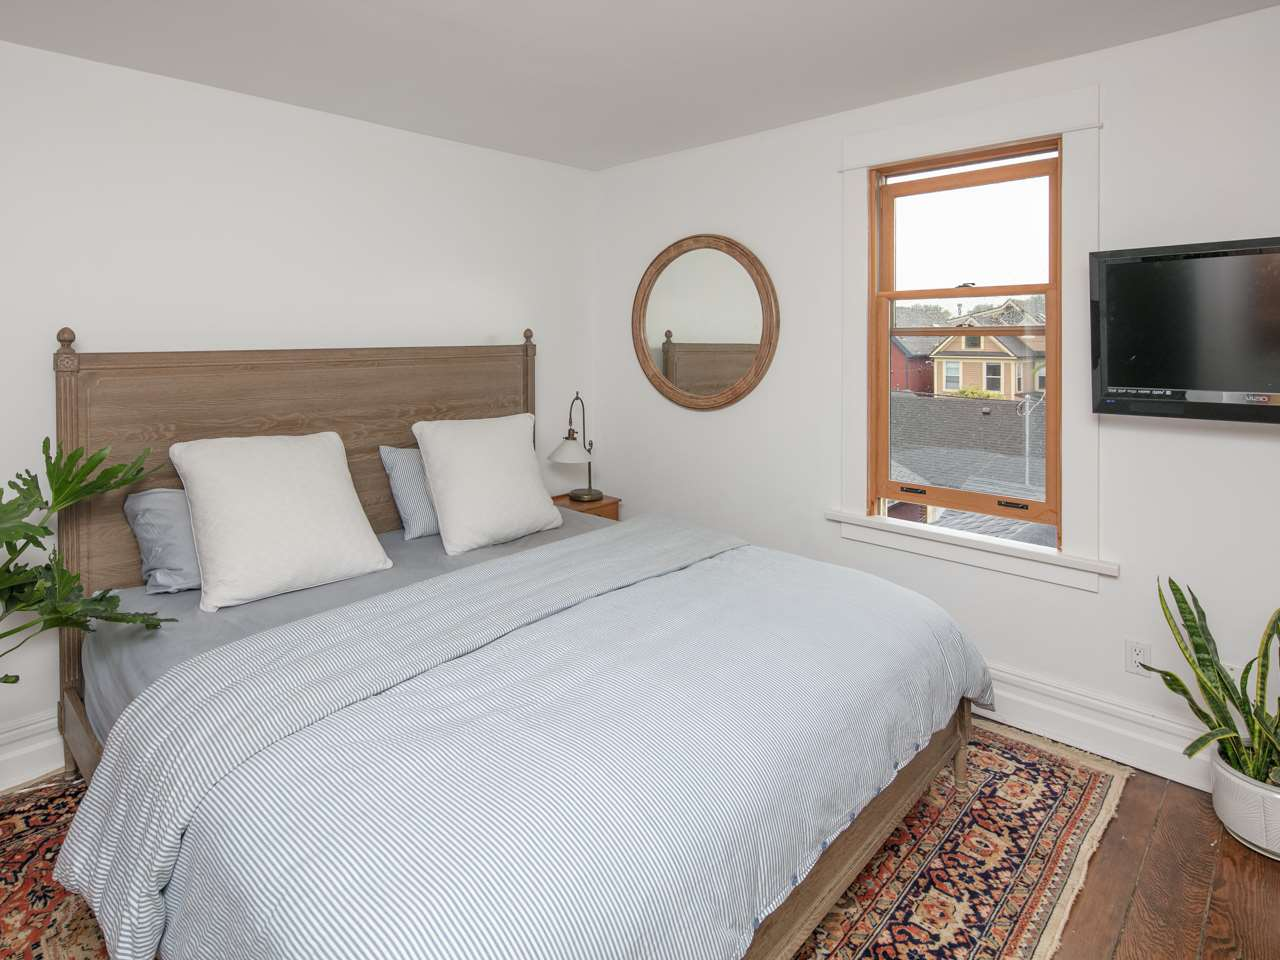 Photo 12: 880 KEEFER Street in Vancouver: Mount Pleasant VE House for sale (Vancouver East)  : MLS® # R2176389